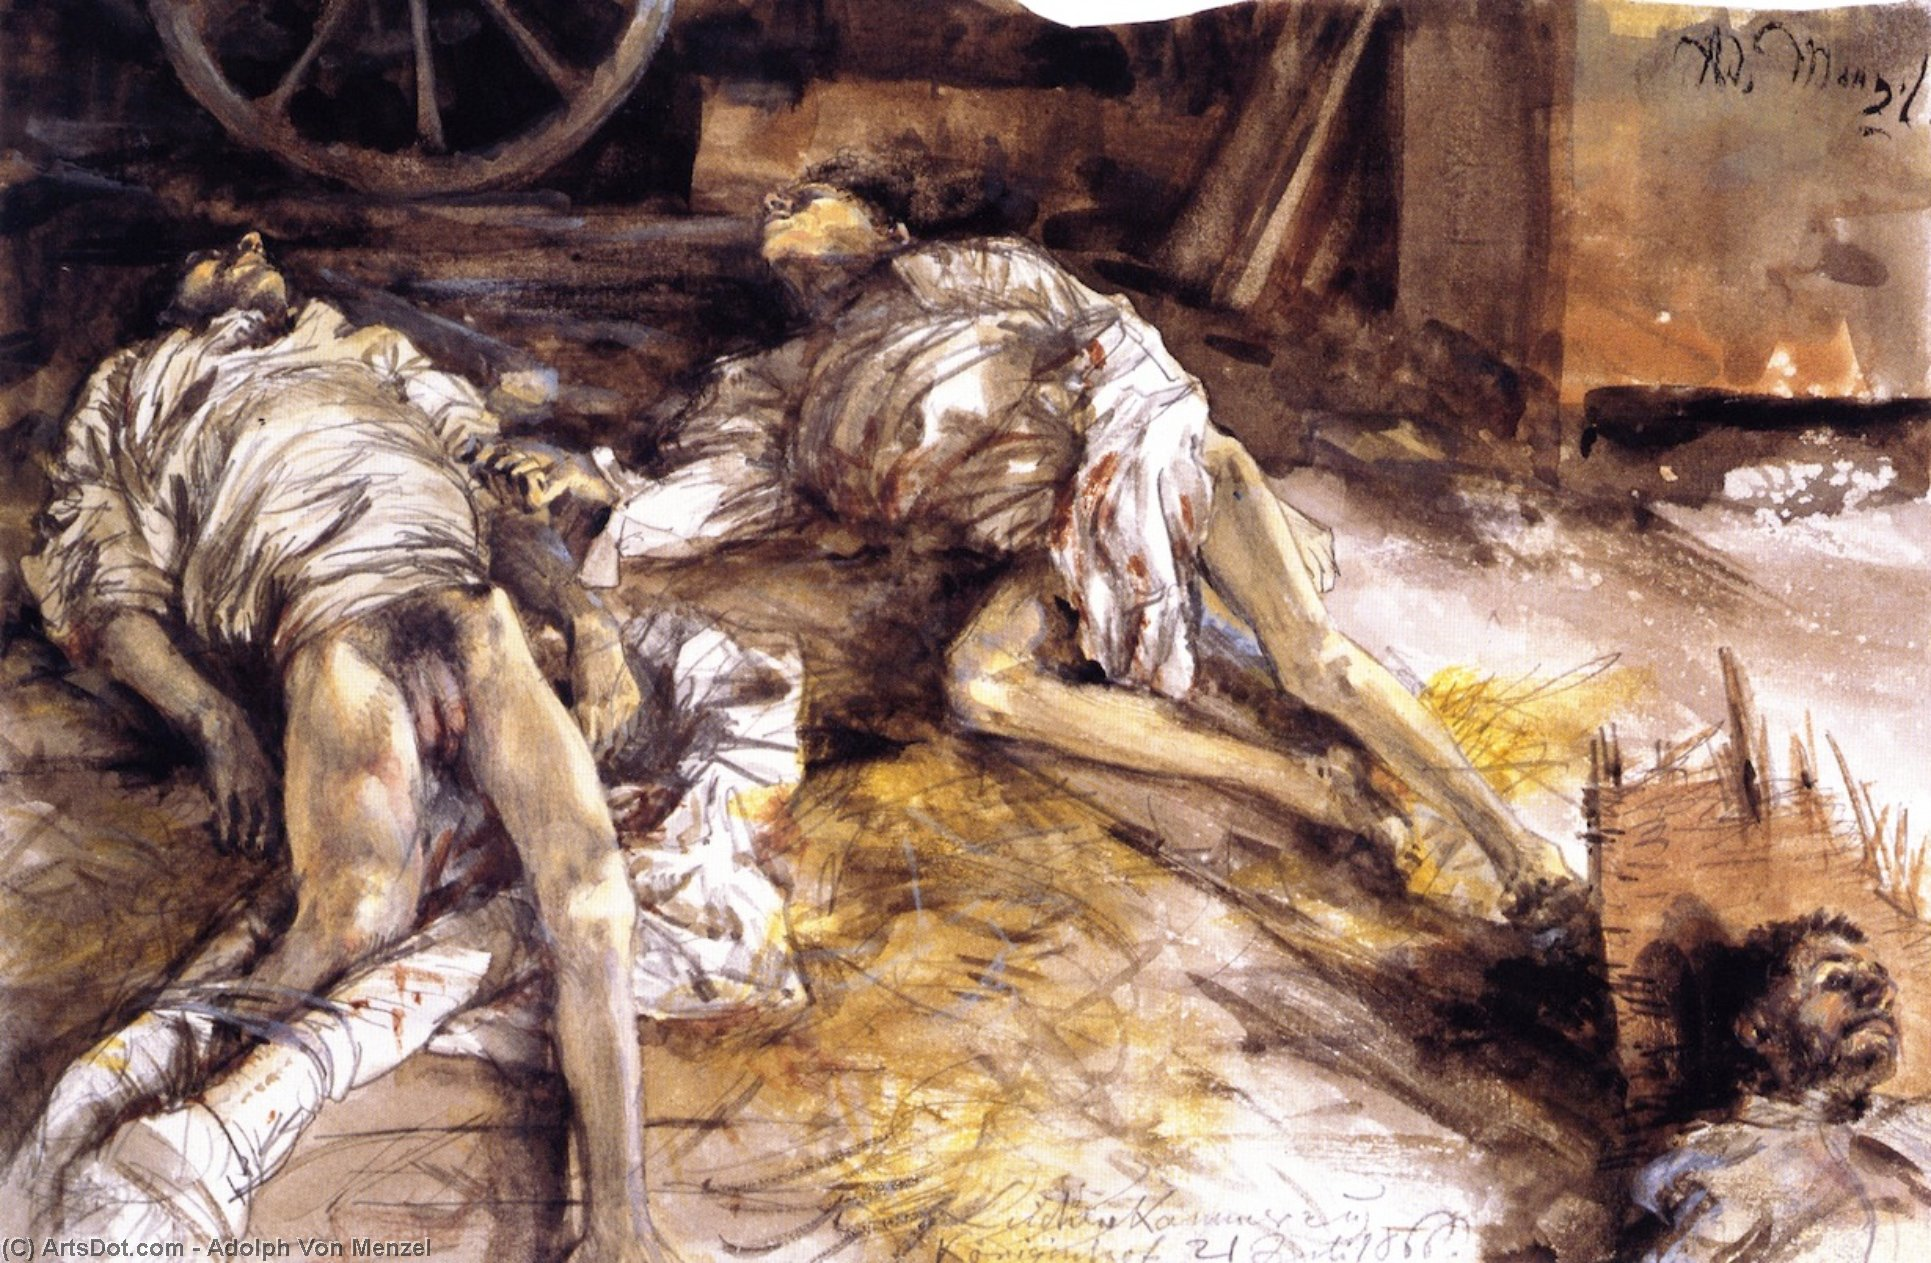 Two Dead Soldiers in a Barn, 1866 by Adolph Menzel (1815-1905, Poland) | Art Reproduction | ArtsDot.com